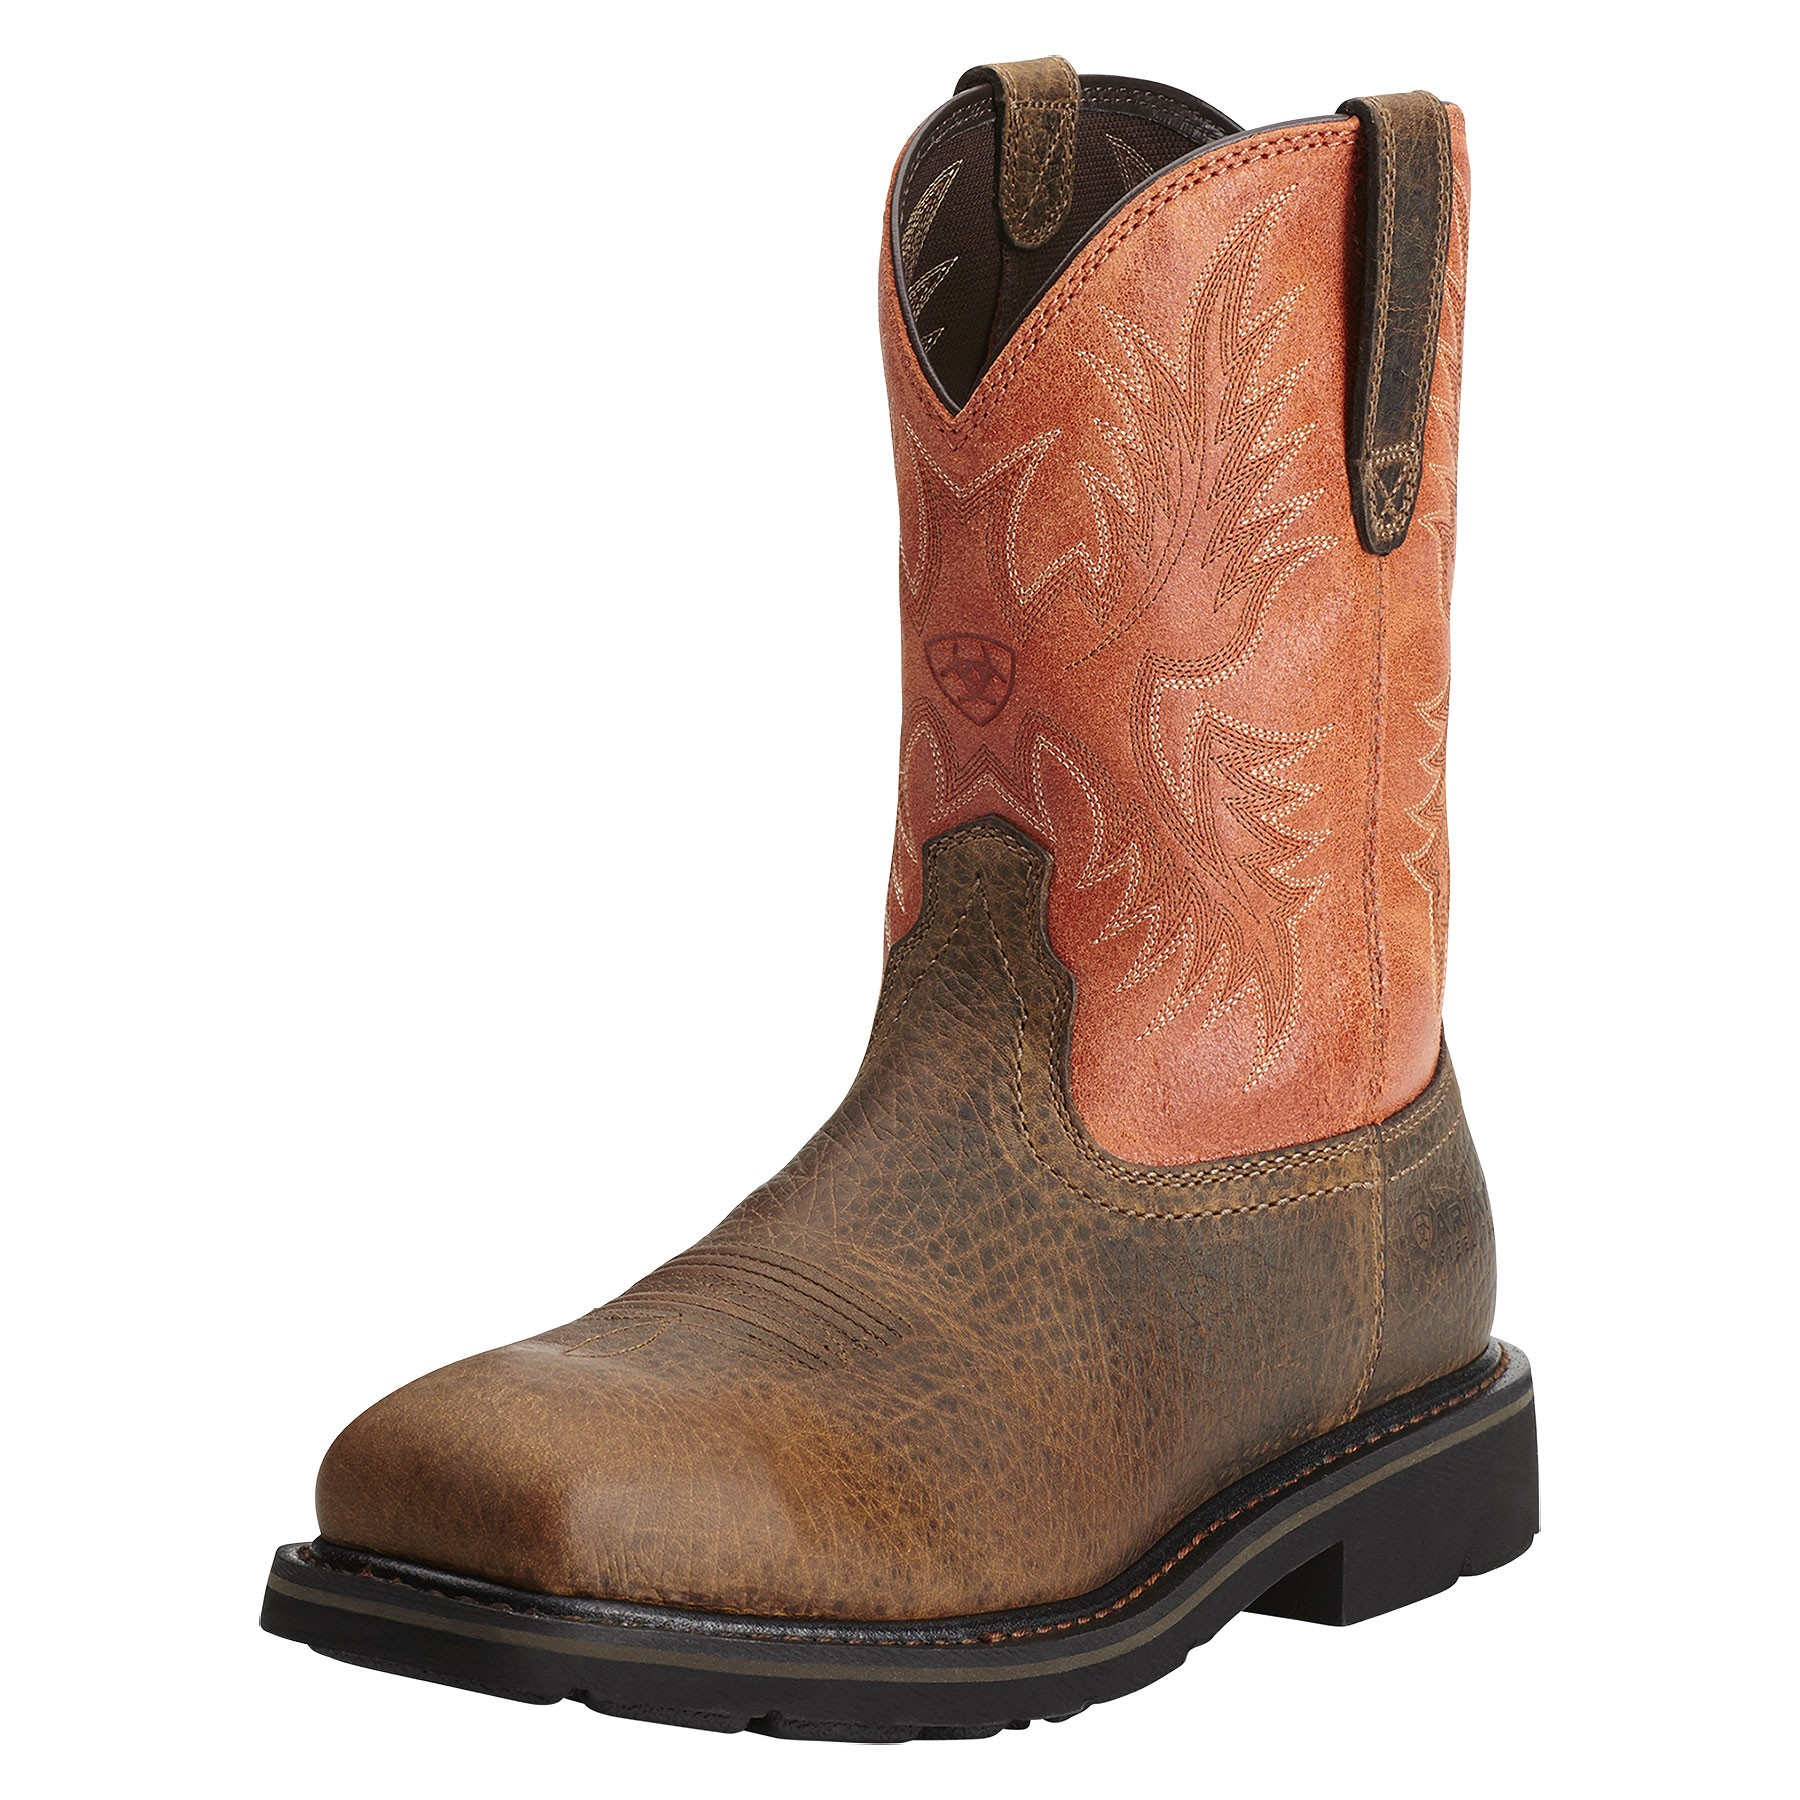 Ariat Work Boots Steel Toe tkHUc0AZ